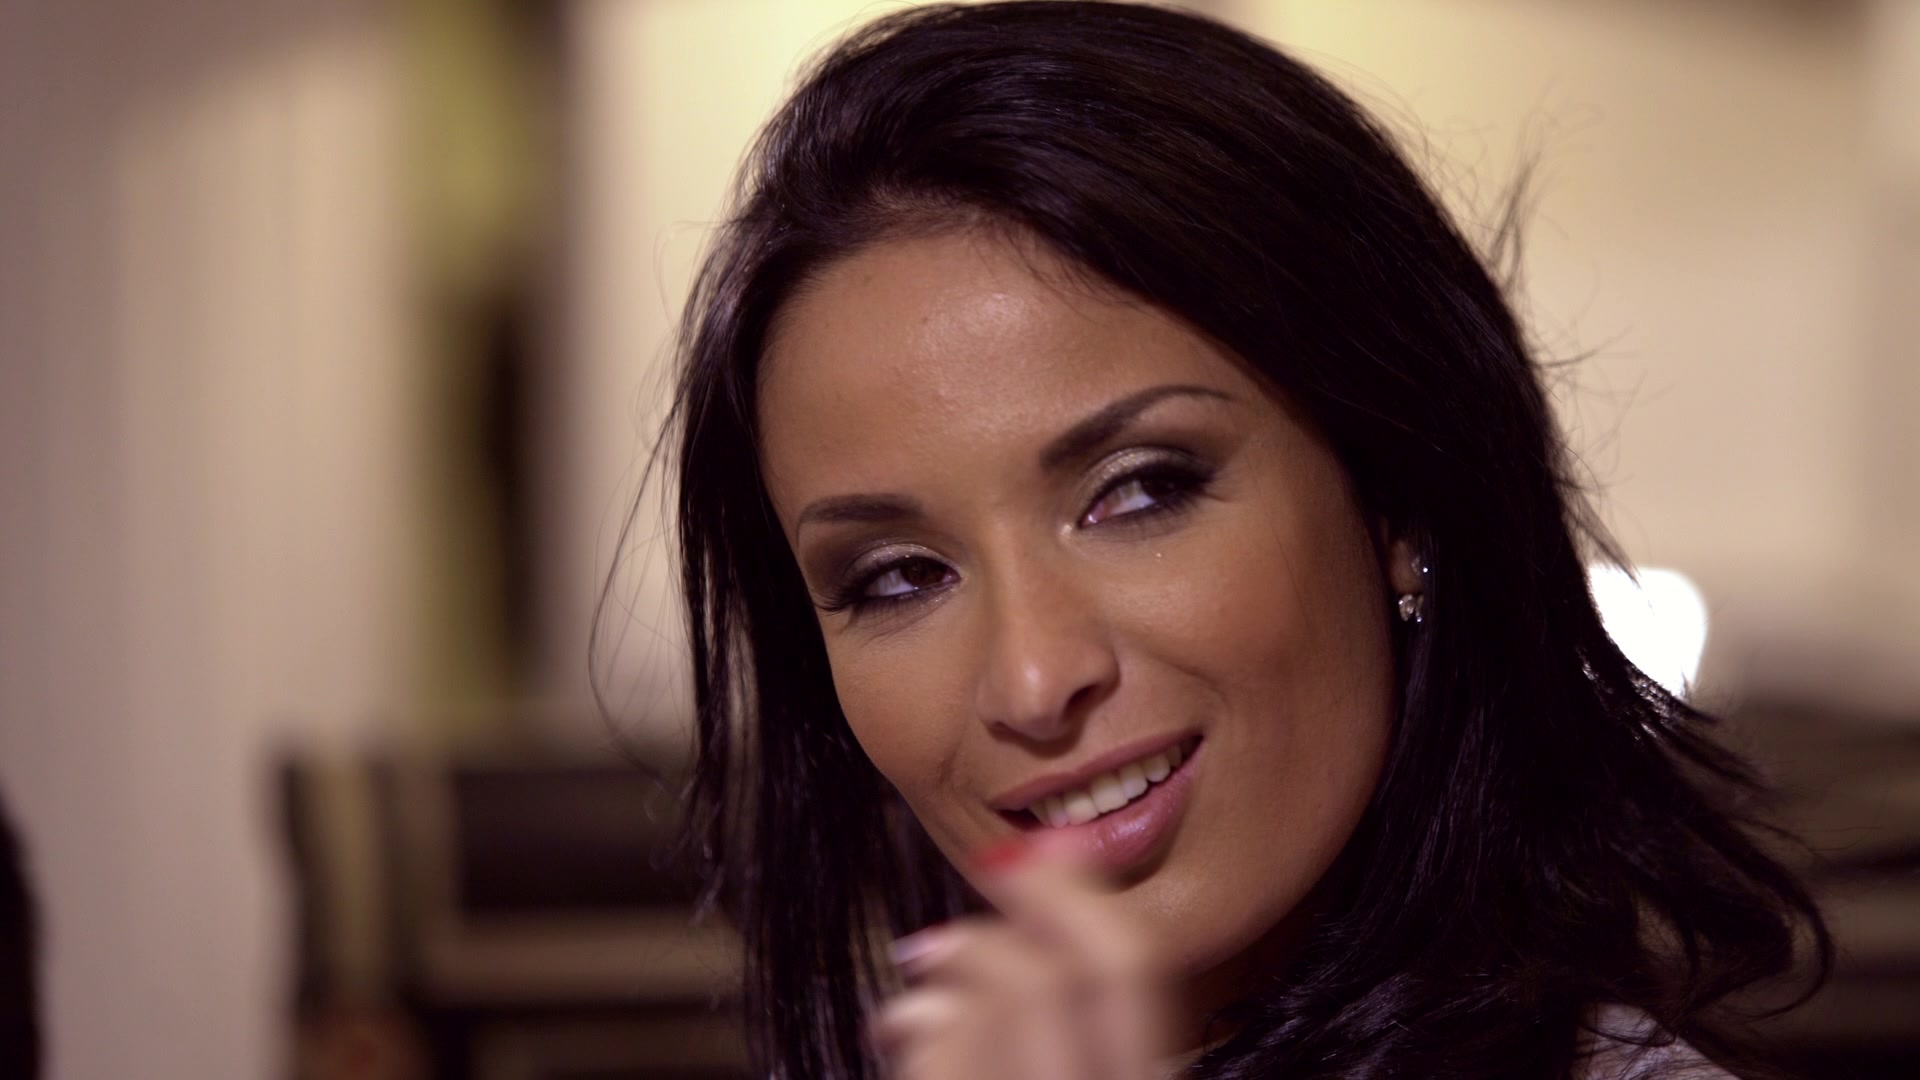 Scene with Jessie Volt and Anissa Kate - image 2 out of 20